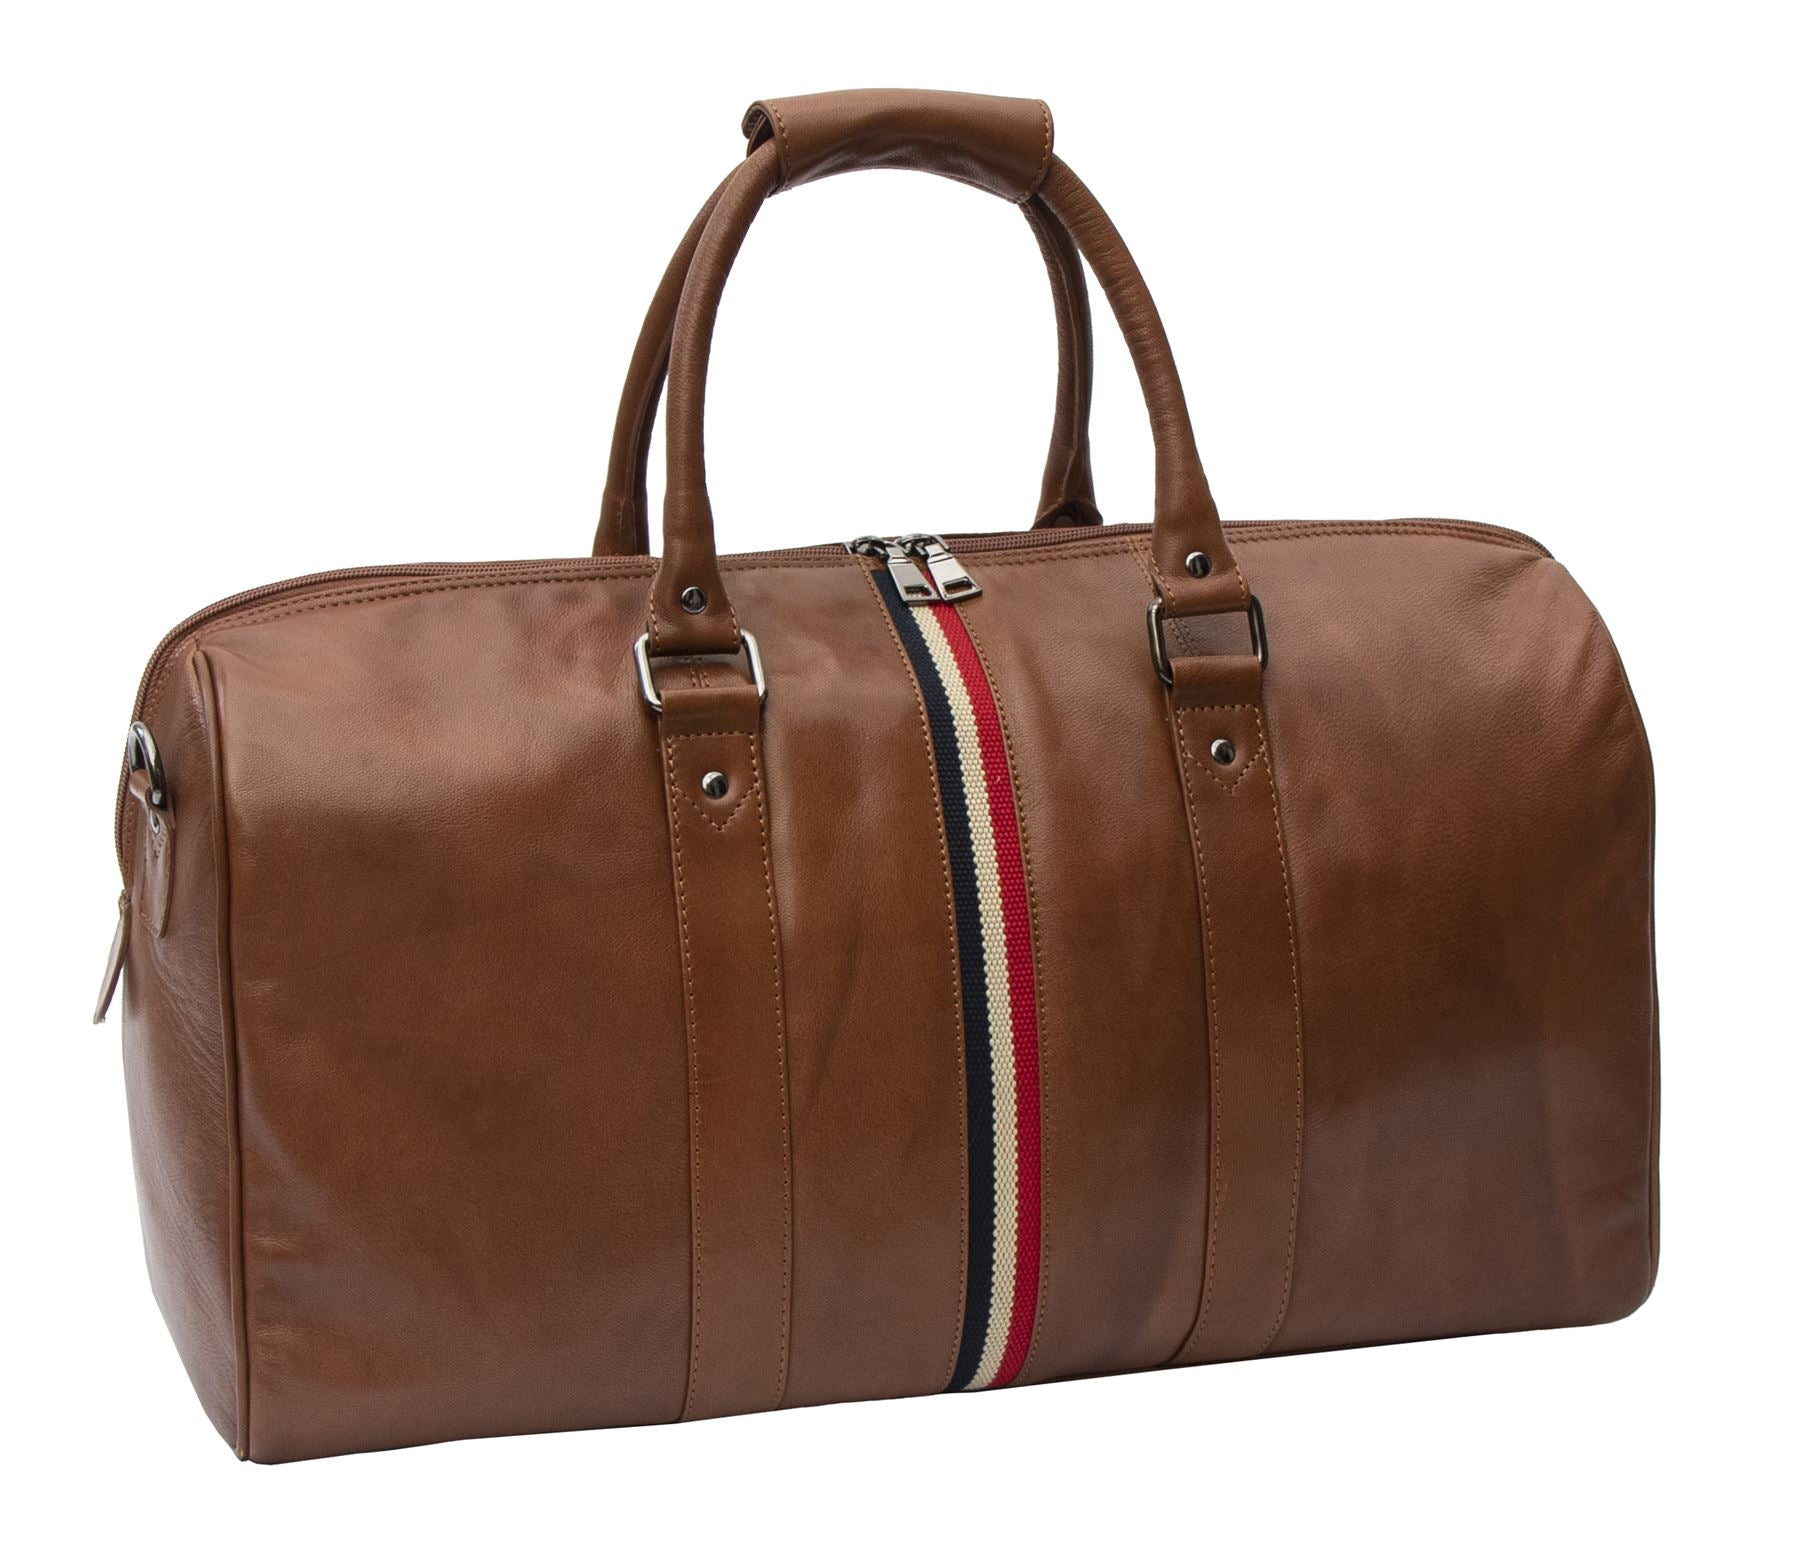 Texan Leather Holdall Duffle Bag - 8410